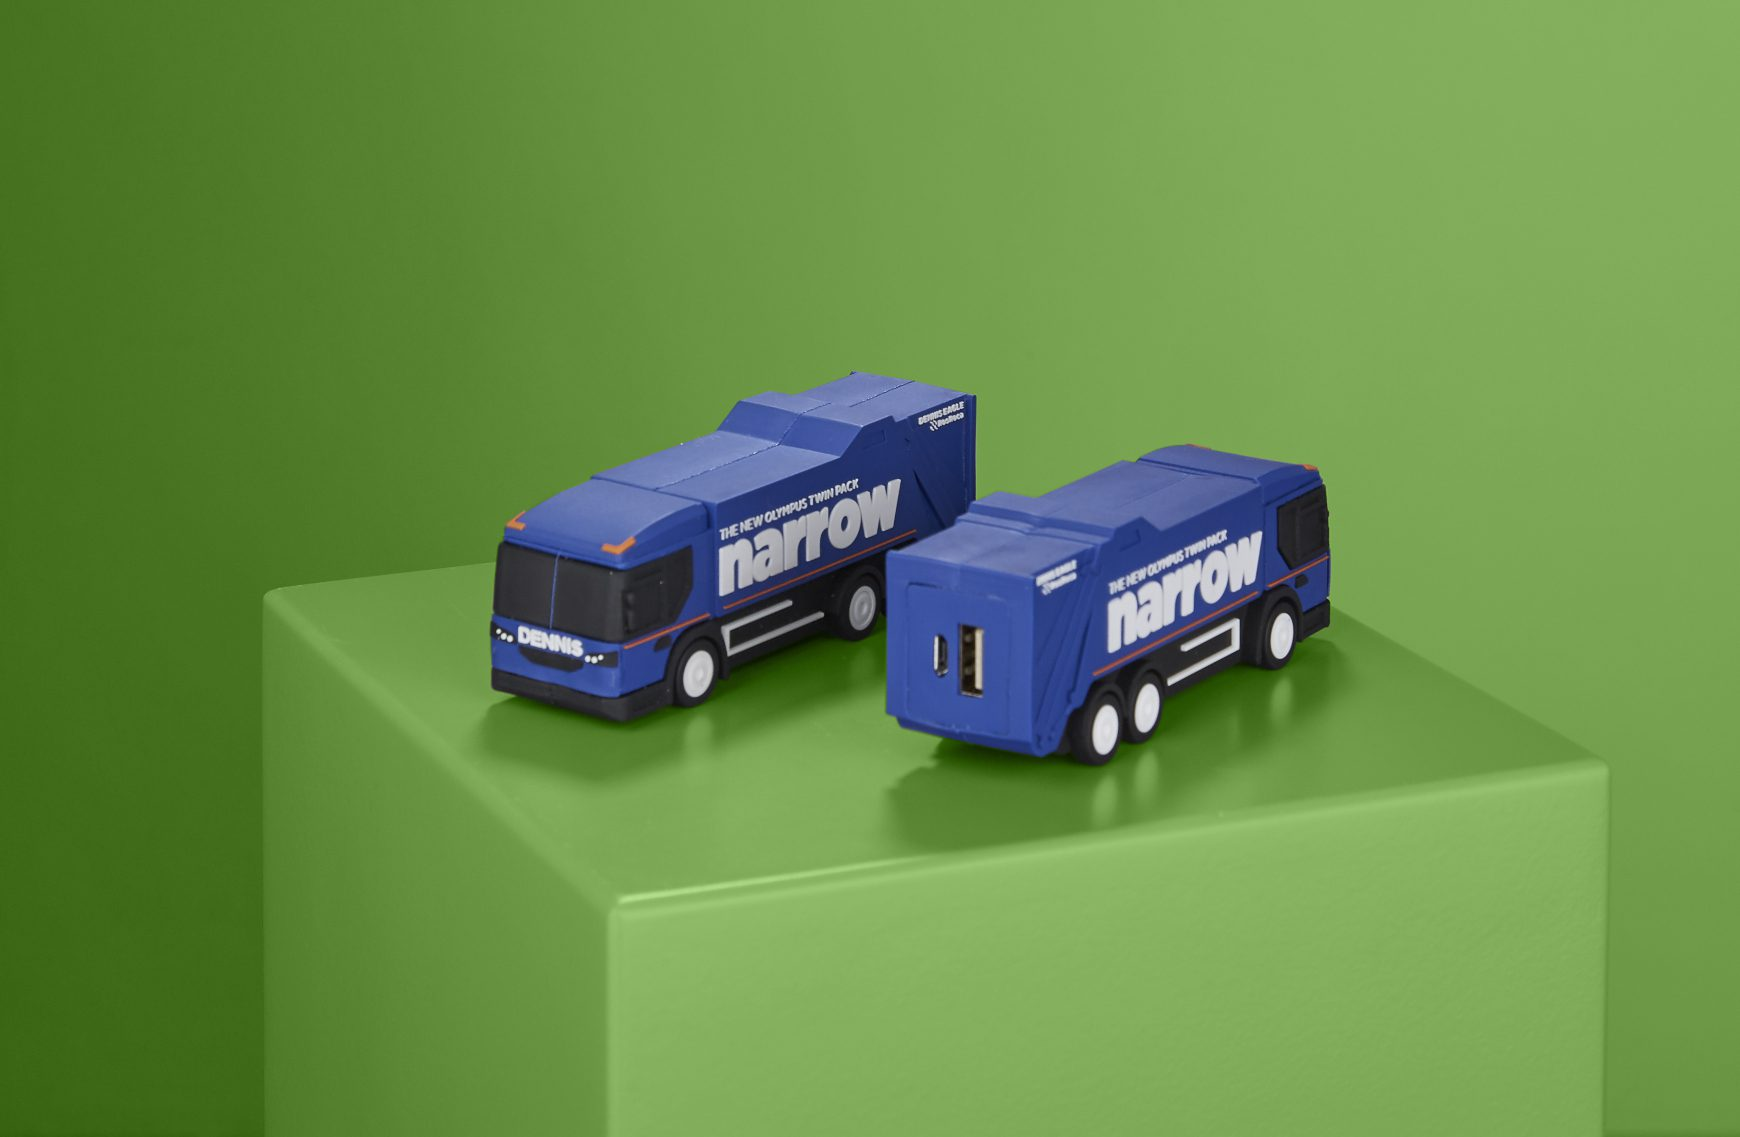 USB drives moulded into lorries.